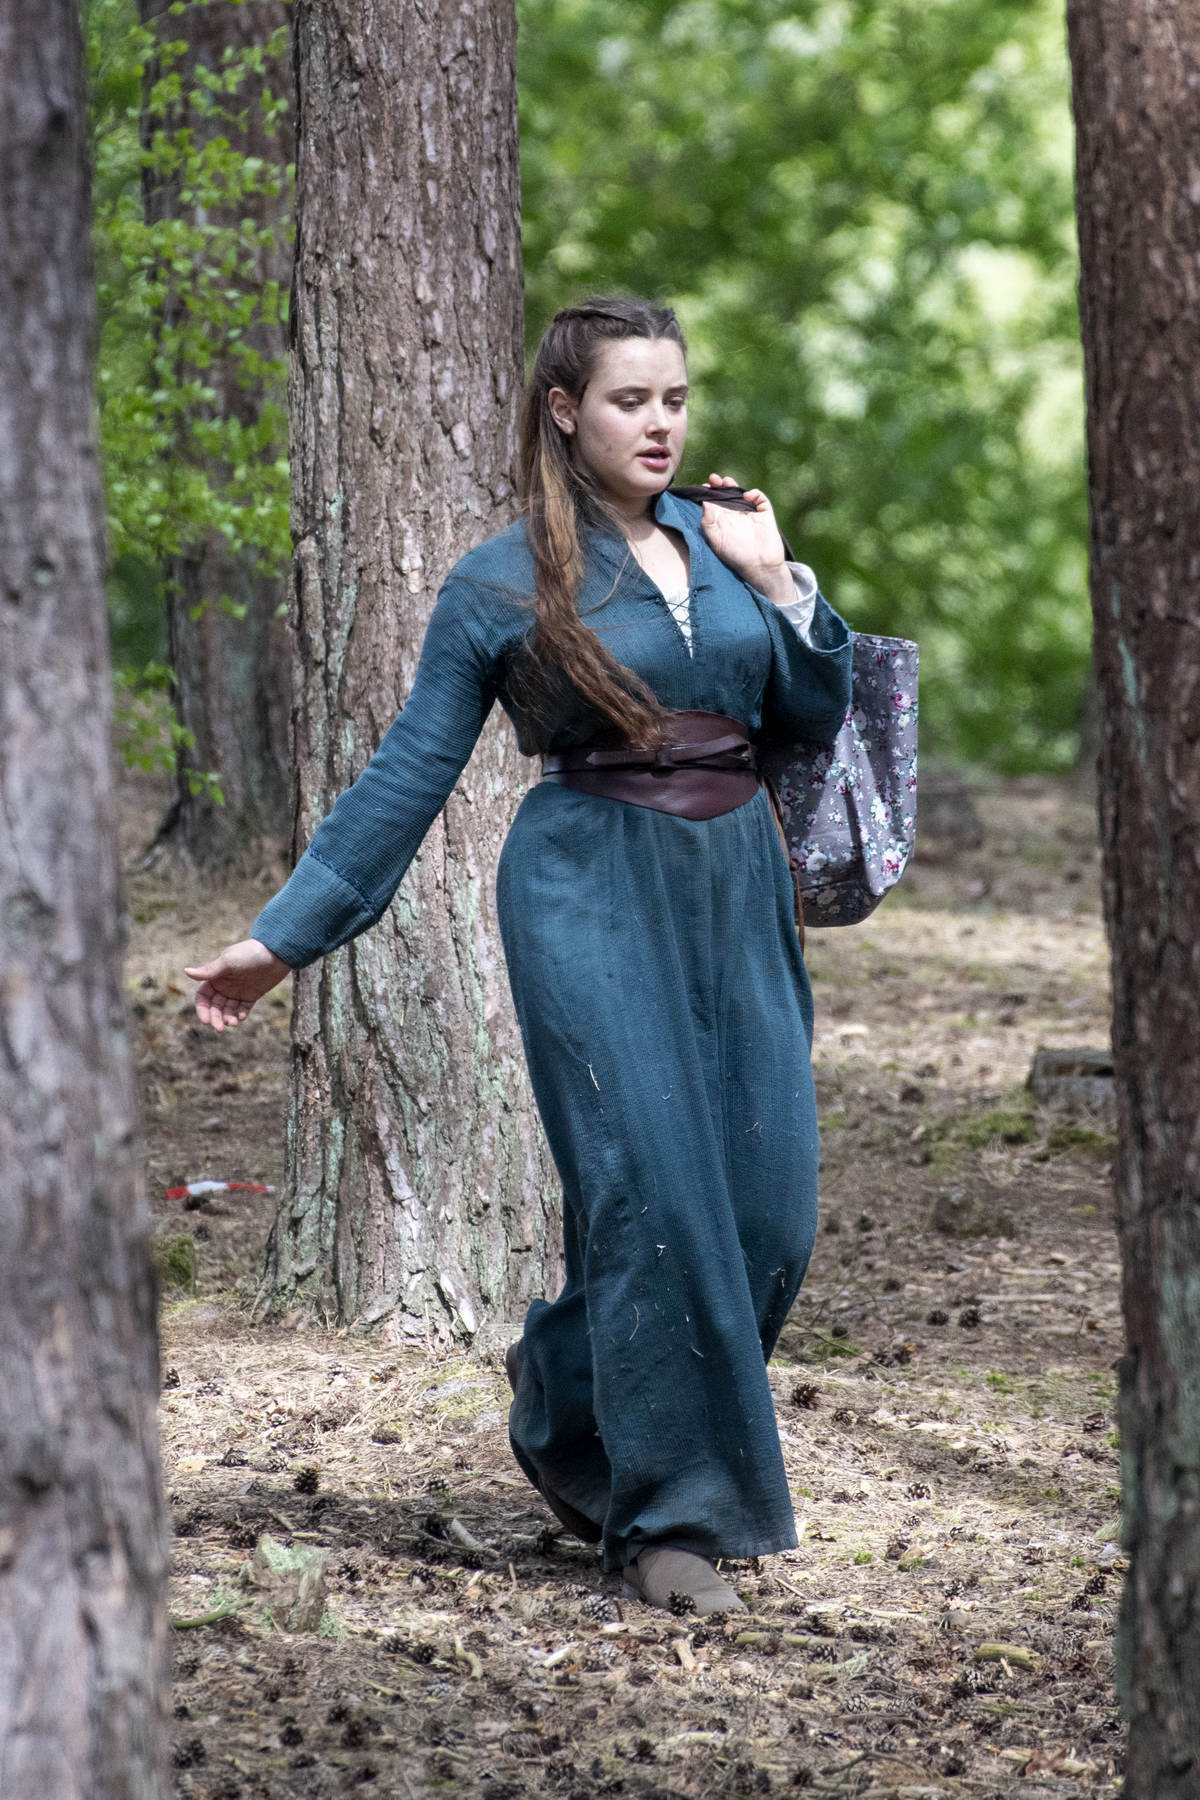 Katherine Langford seen while filming upcoming Netflix Series 'Cursed' in Frensham, UK